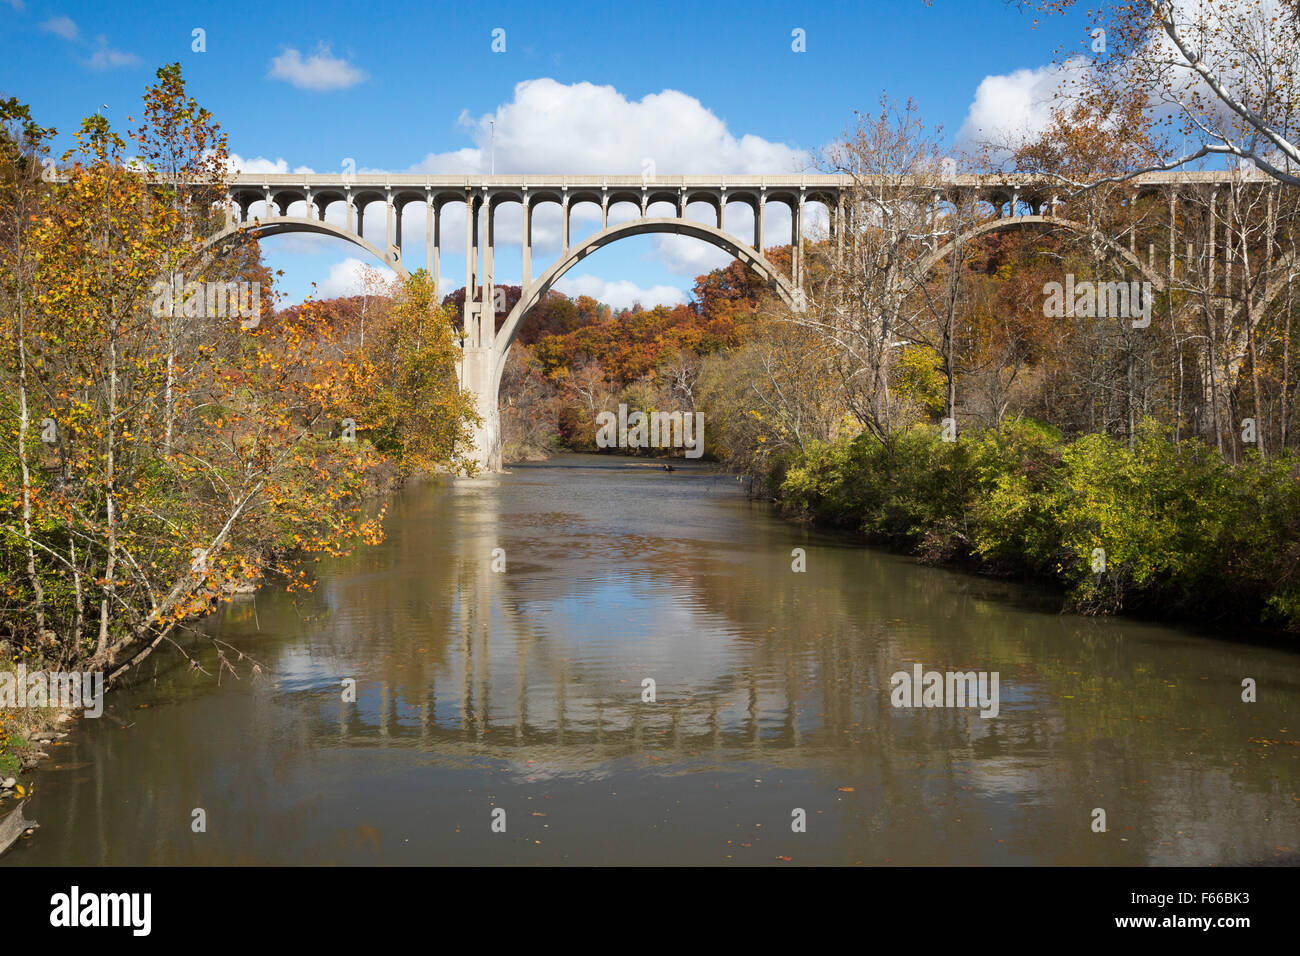 Scenic Fall Wallpaper Cuyahoga Valley National Park Ohio A Bridge Over The